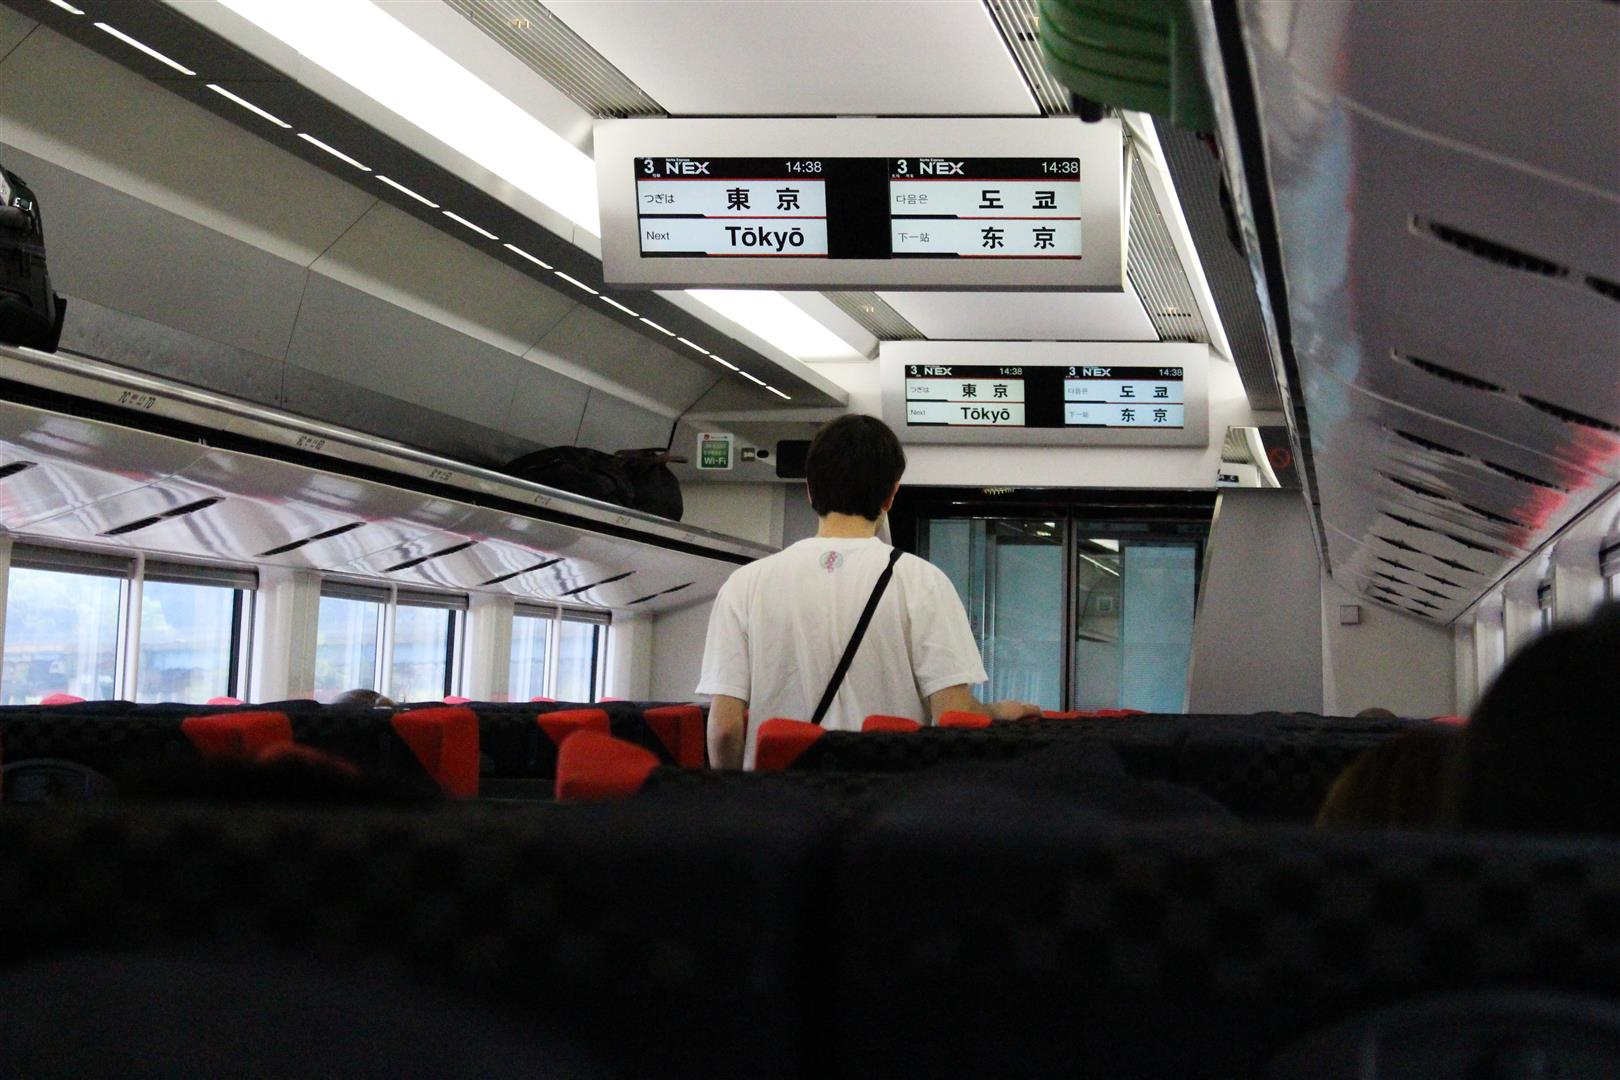 You can take the N'EX with the Japan Rail Pass. But that's a topic for another post.